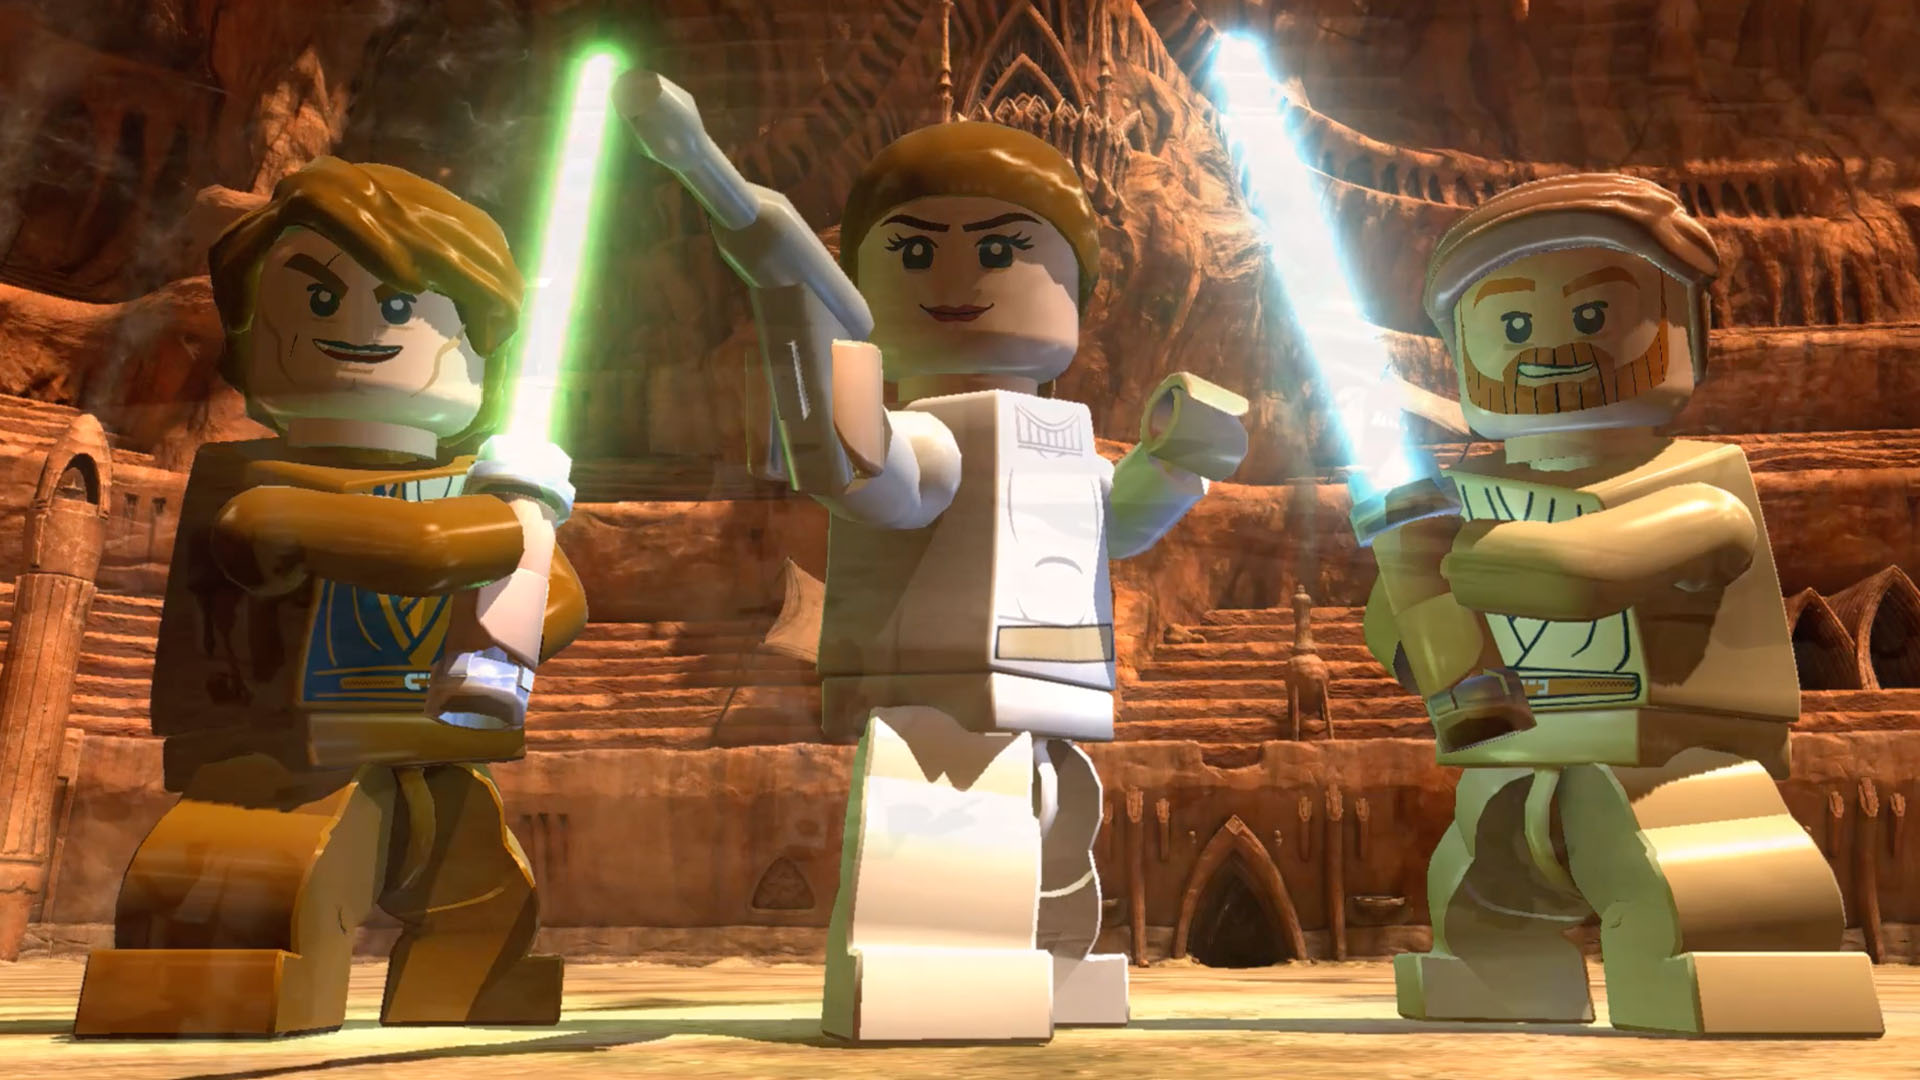 Clip: Lego Star Wars III: The Clone Wars Gameplay - Zebra Gamer - Season 1